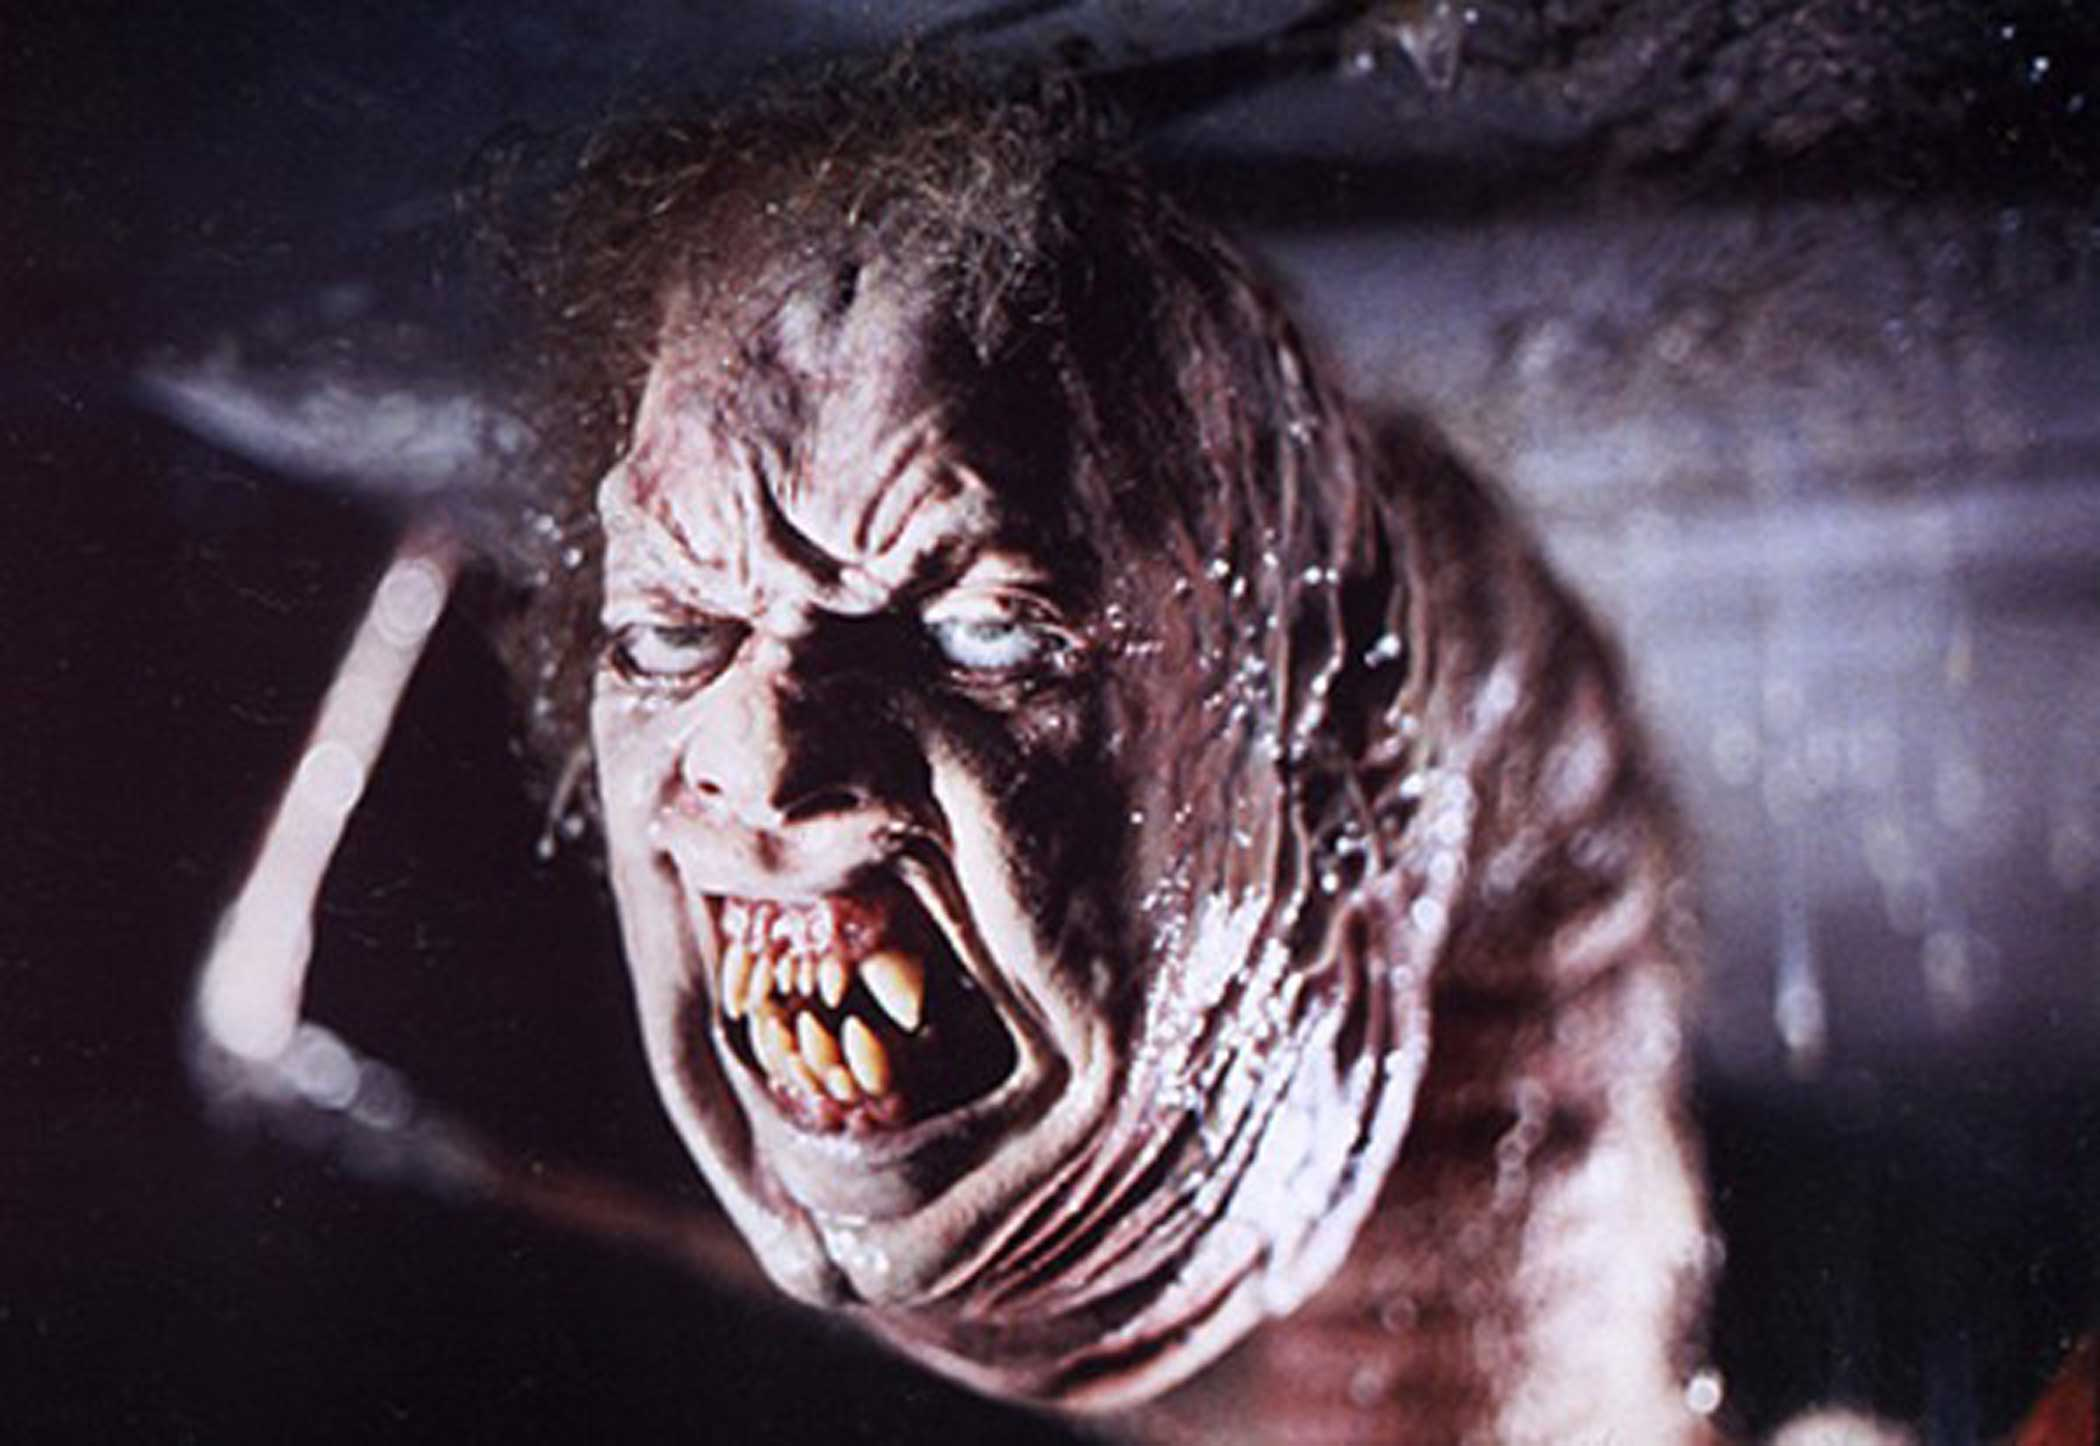 The Thing from The Thing, 1982.